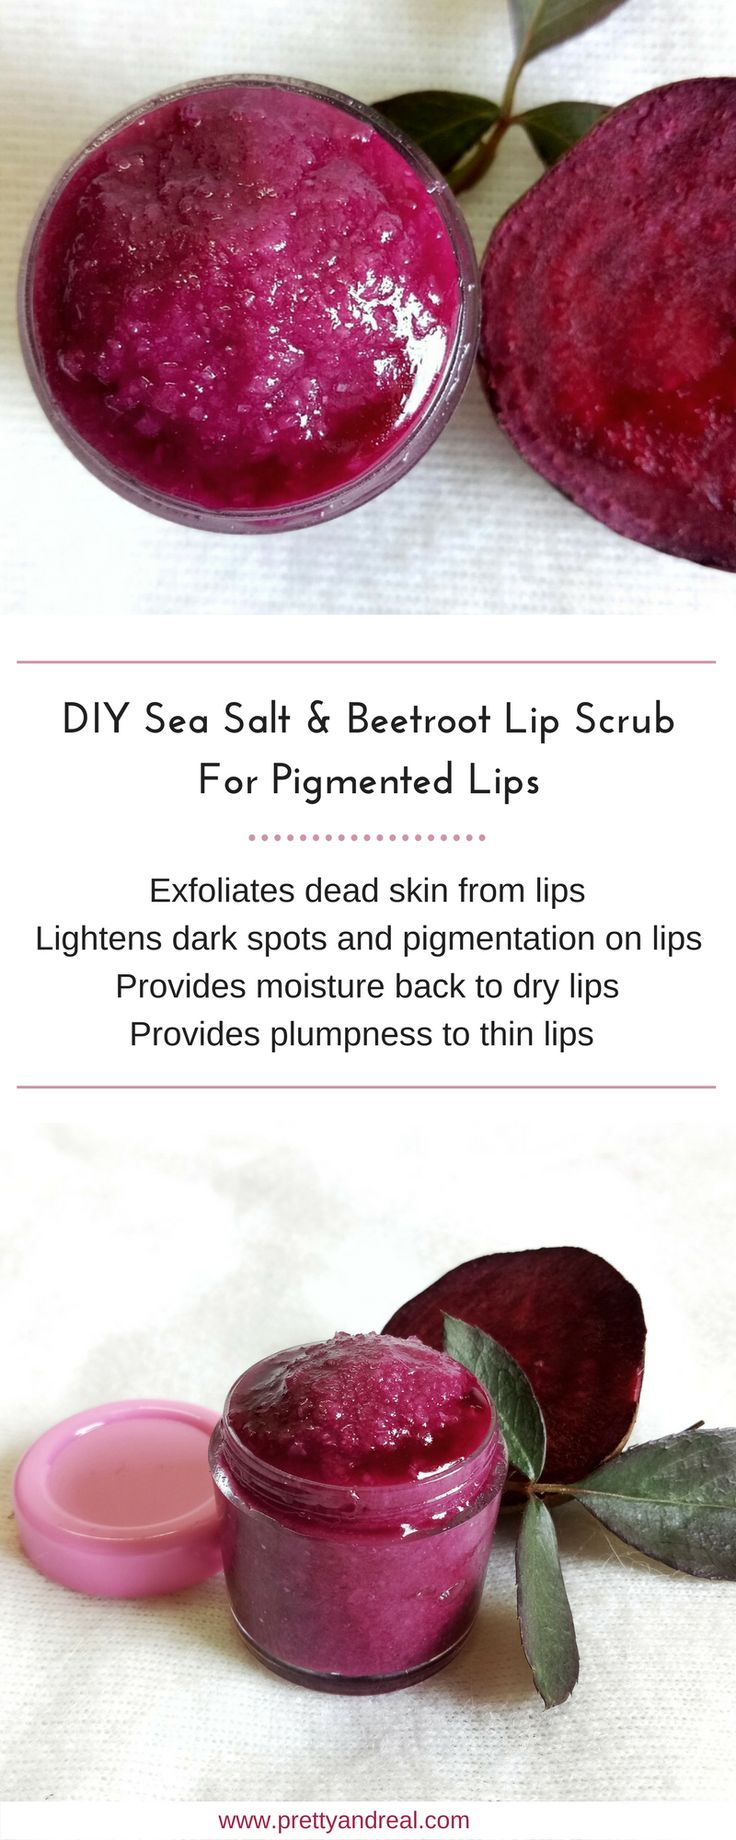 Pigmentation is a common skin condition that causes dark patches or spots on skin and lips. Use this DIY Beetroot & Sea Salt Scrub for Pigmented Lips! #lips #lipscrub #scrubs #diy #beauty #beautyblogger